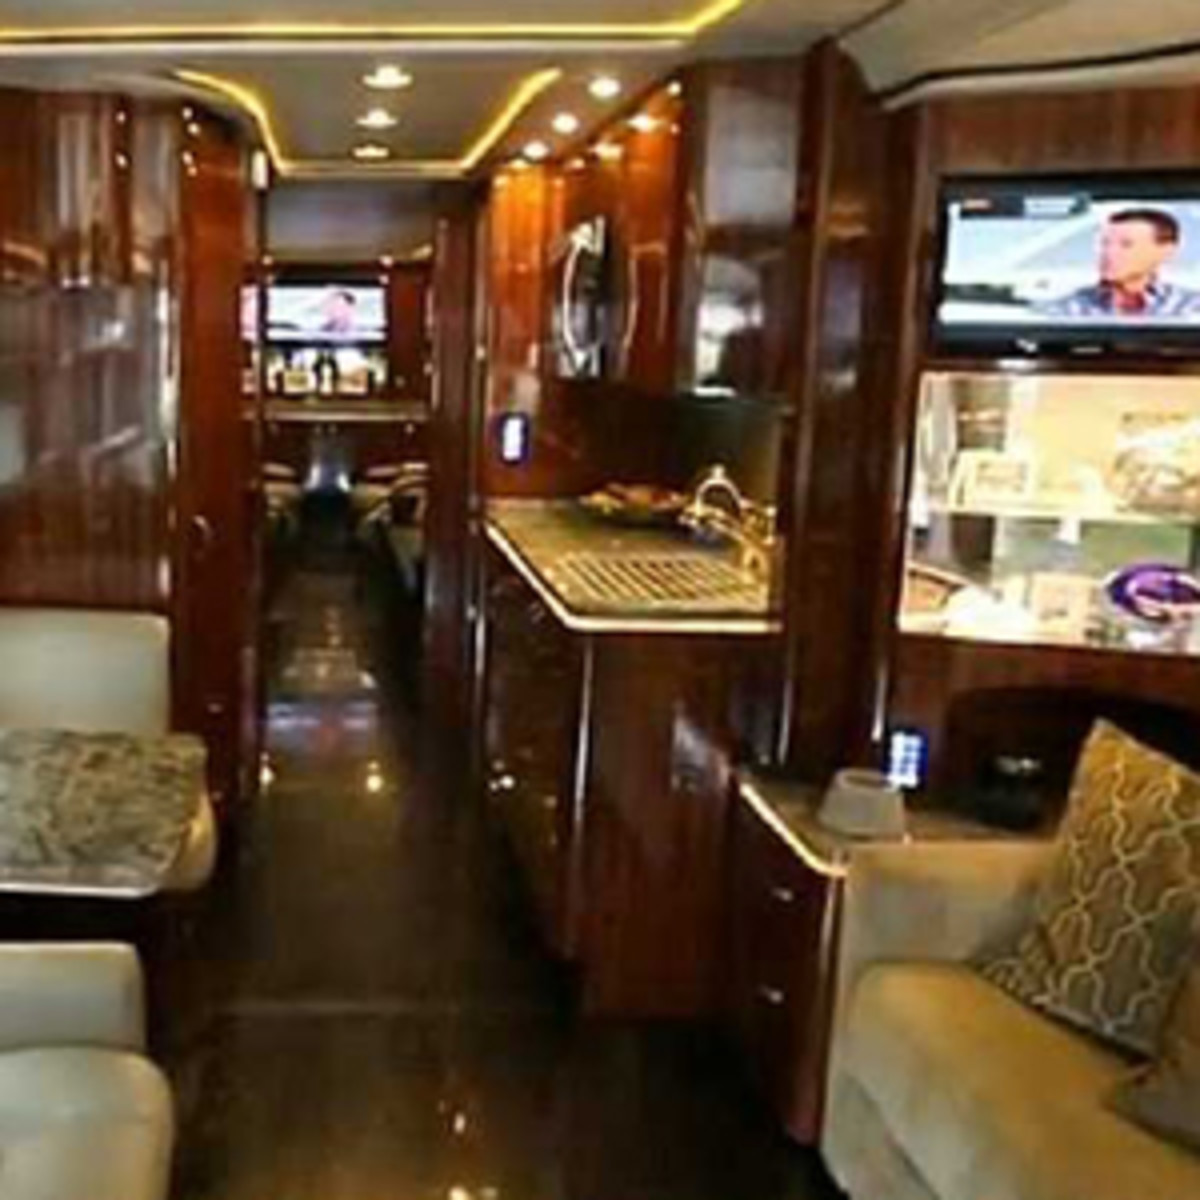 The Cowboys put more than 2 million miles on their first luxury bus.